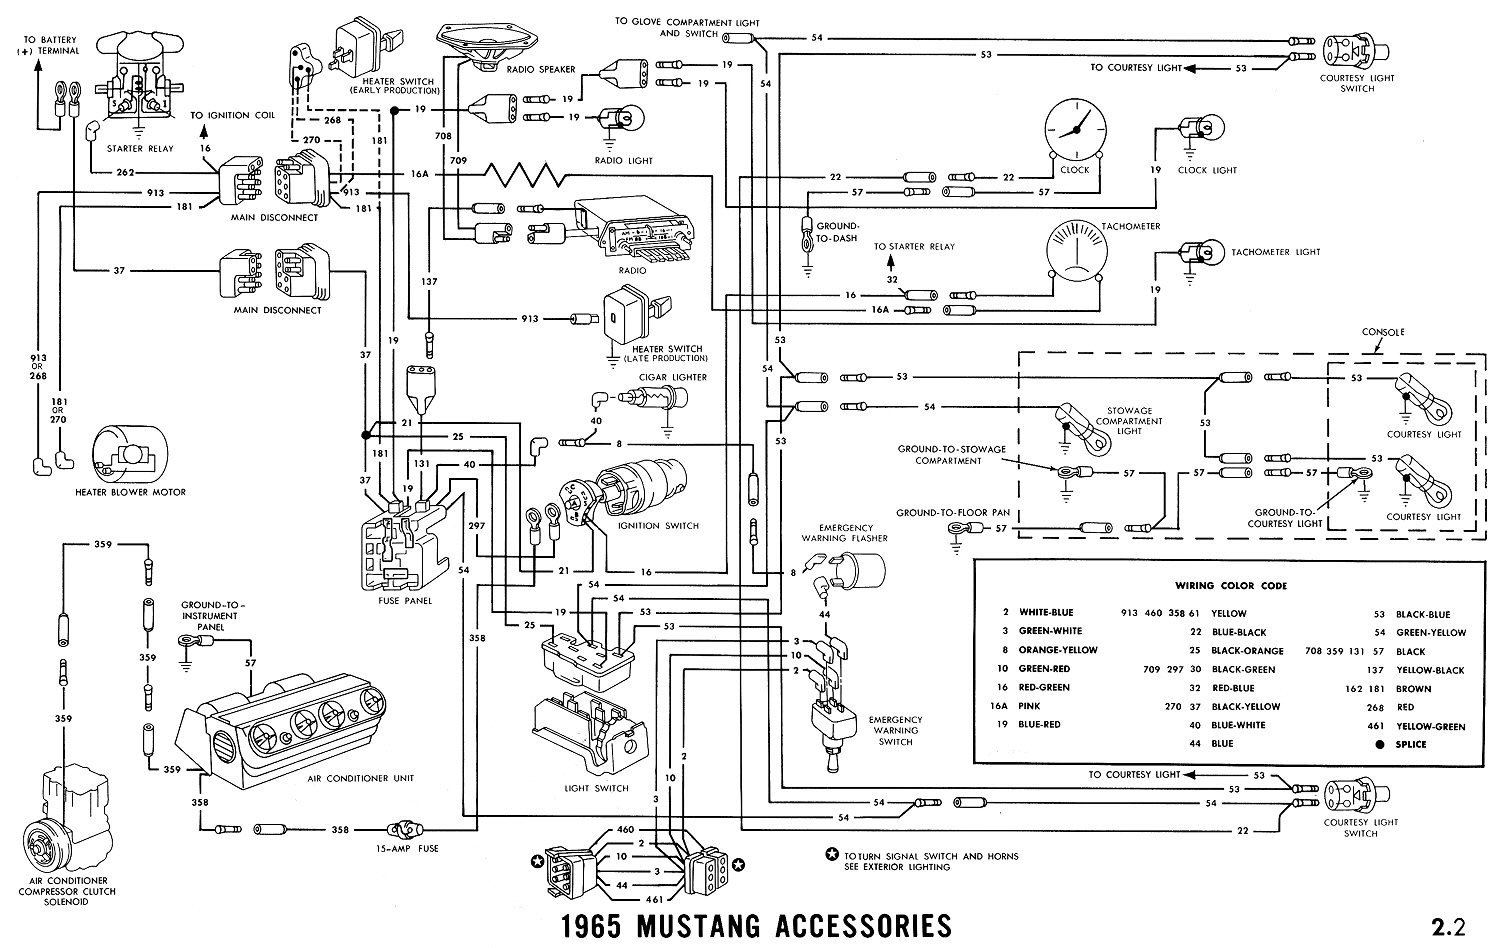 1965i 1965 mustang wiring diagrams average joe restoration 1969 mustang wiring diagram at bayanpartner.co